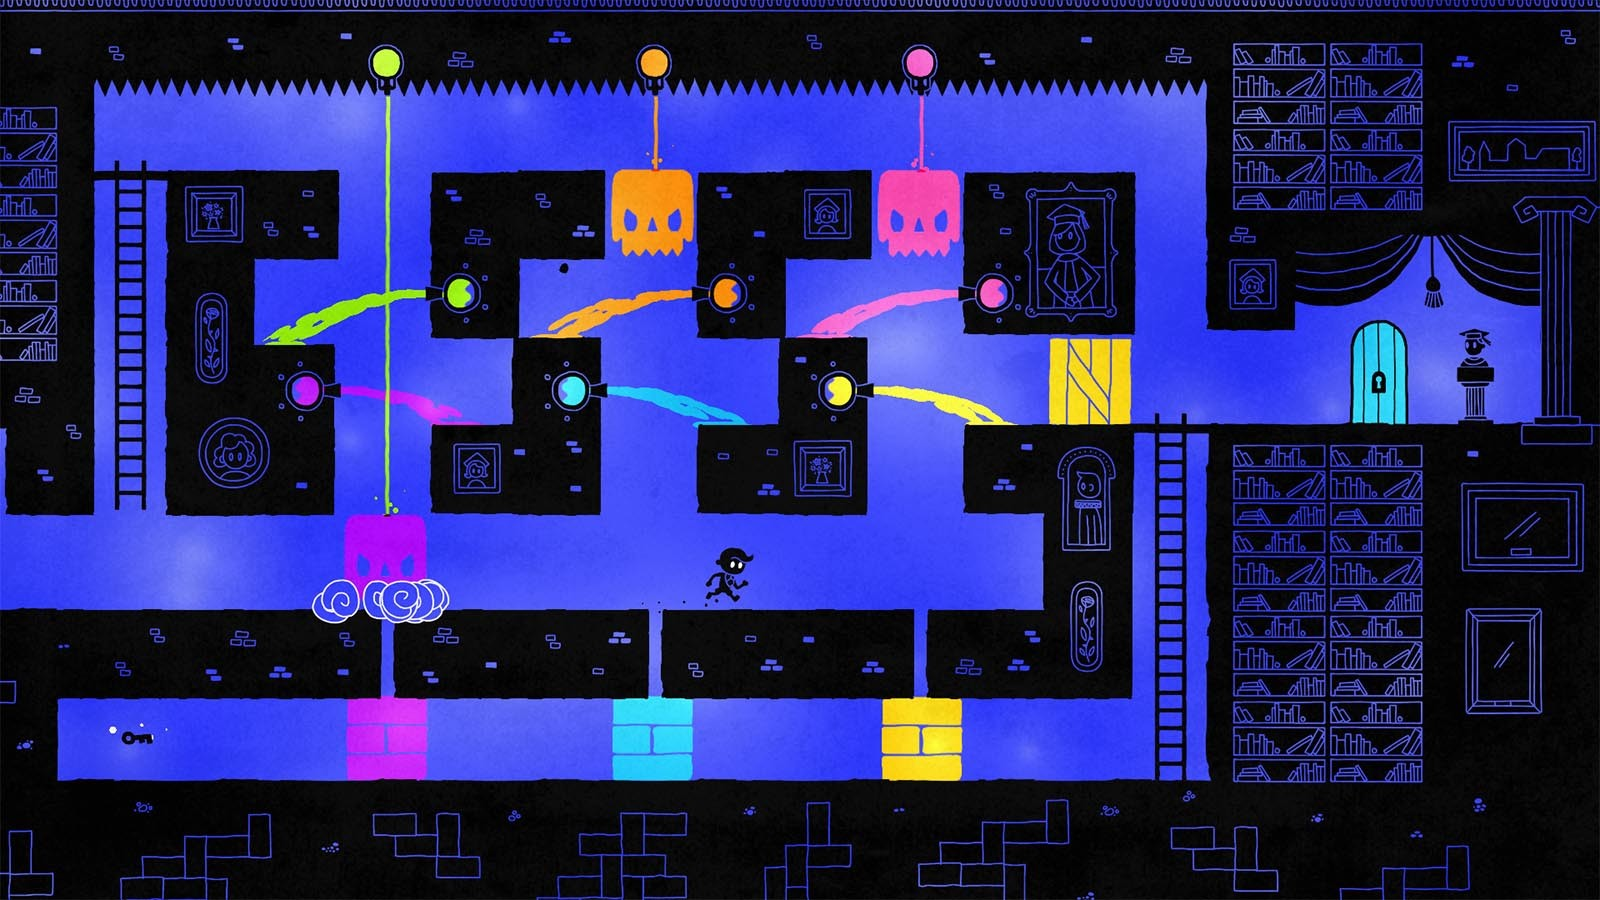 Hue [Steam CD Key] for PC, Mac and Linux - Buy now